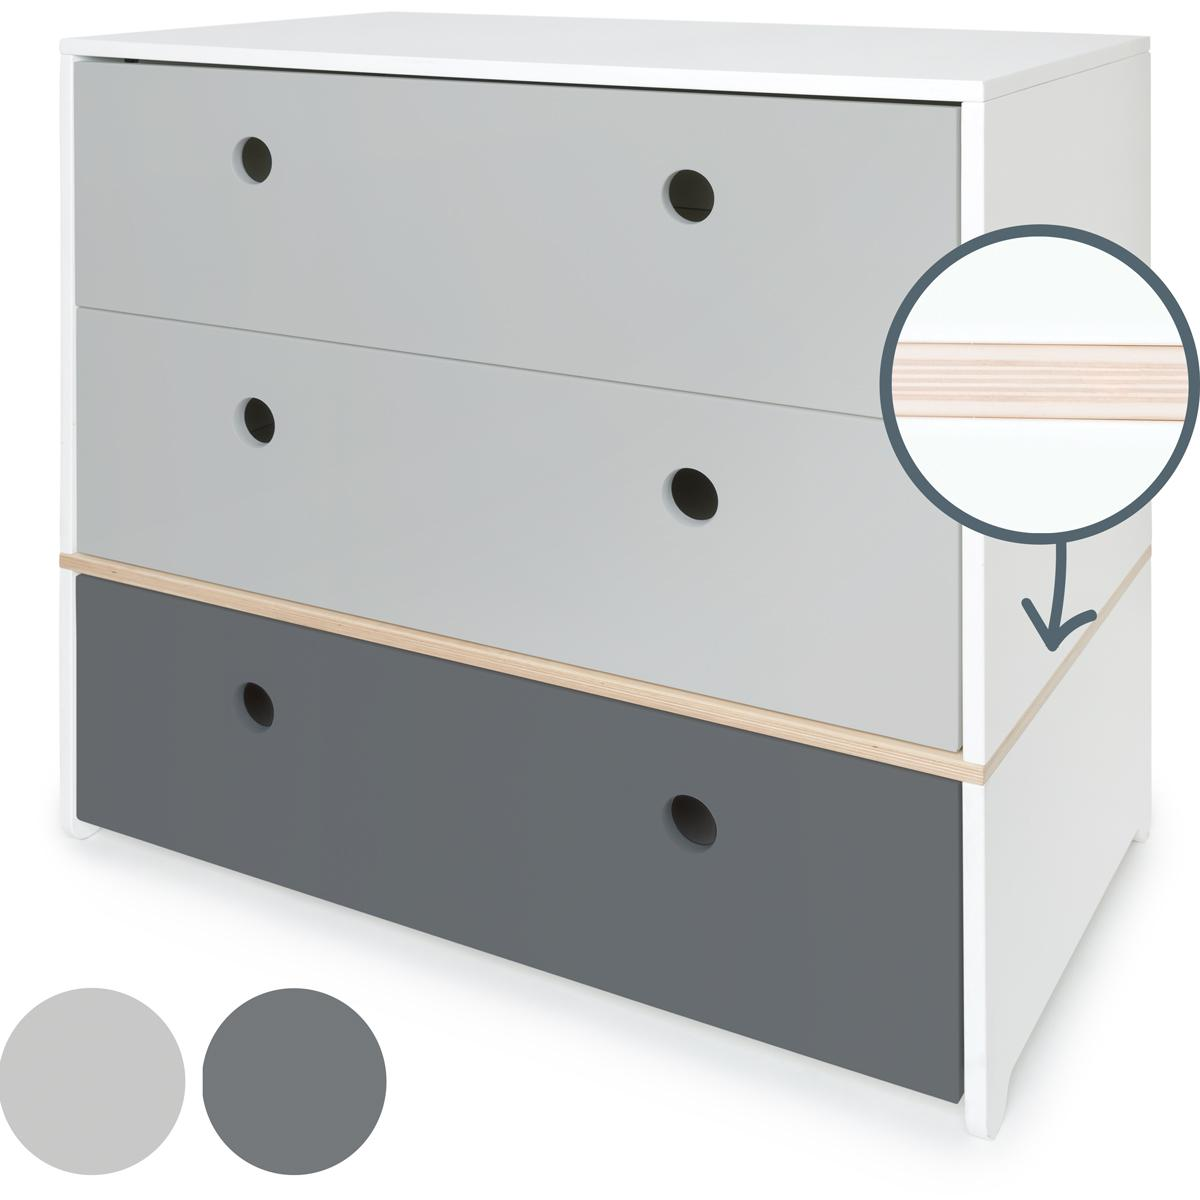 Commode COLORFLEX Abitare Kids façades tiroirs pearl grey-pearl grey-space grey